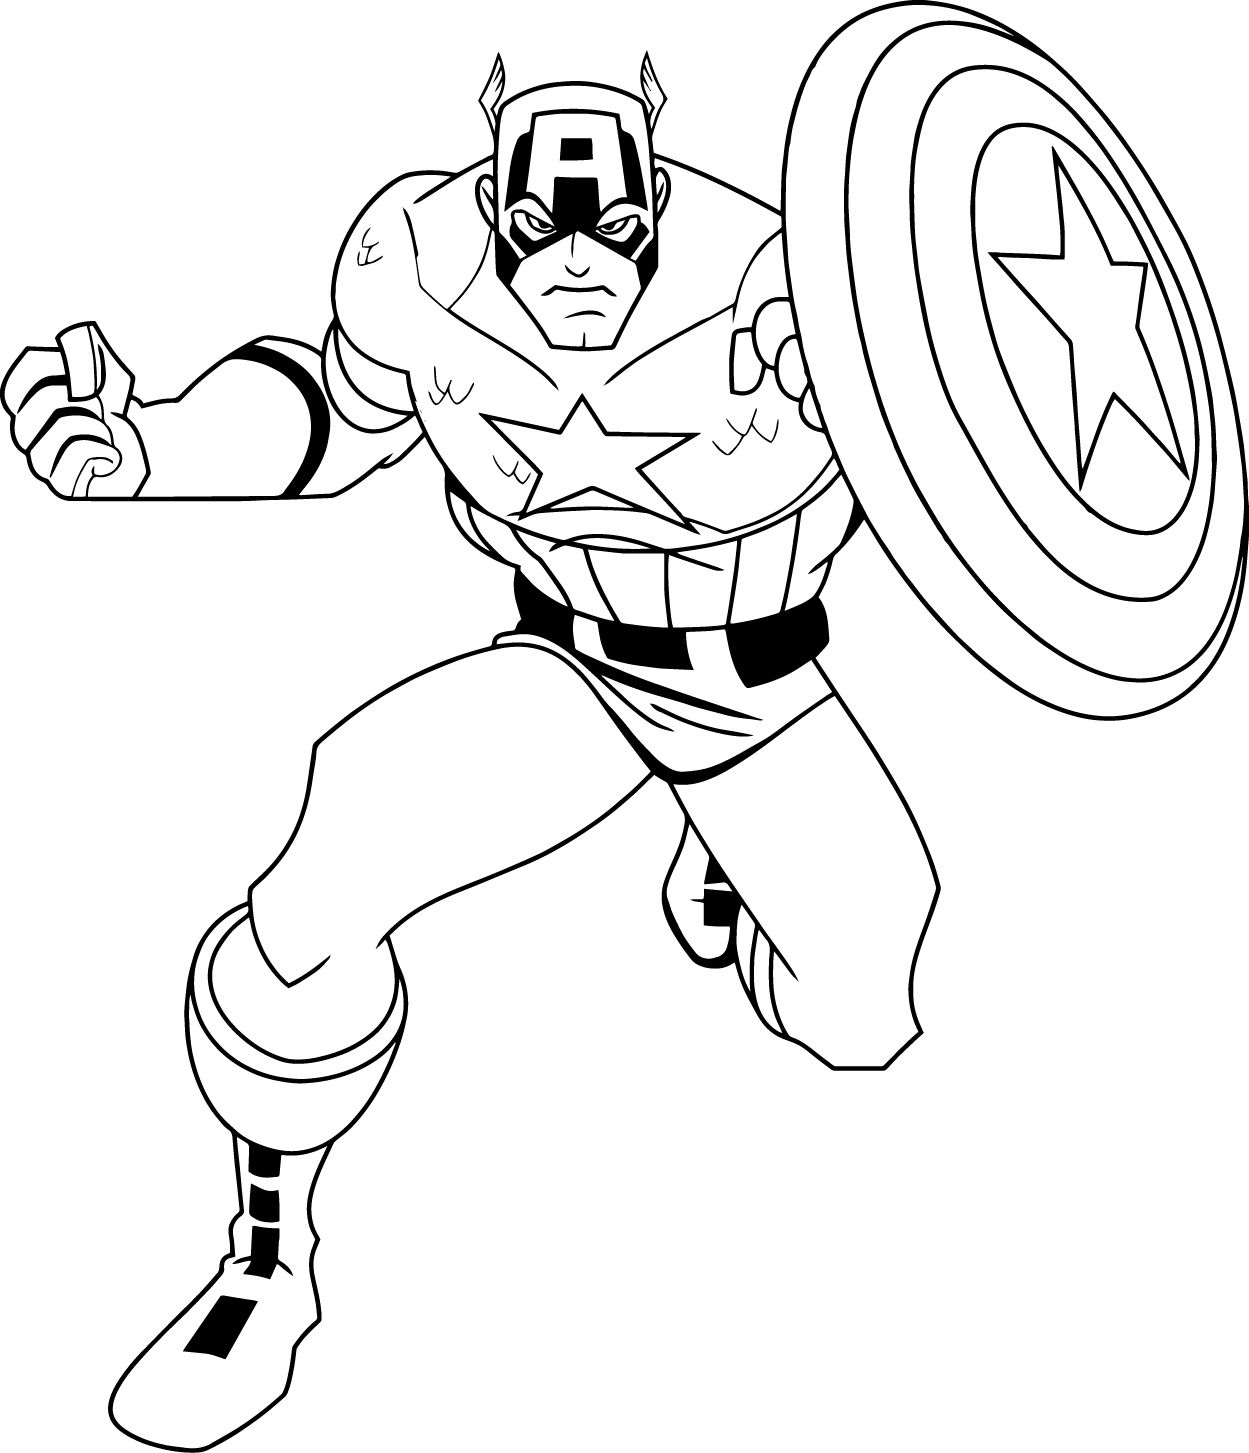 1249x1453 New Captain America Cartoon Coloring Pages Gallery Printable